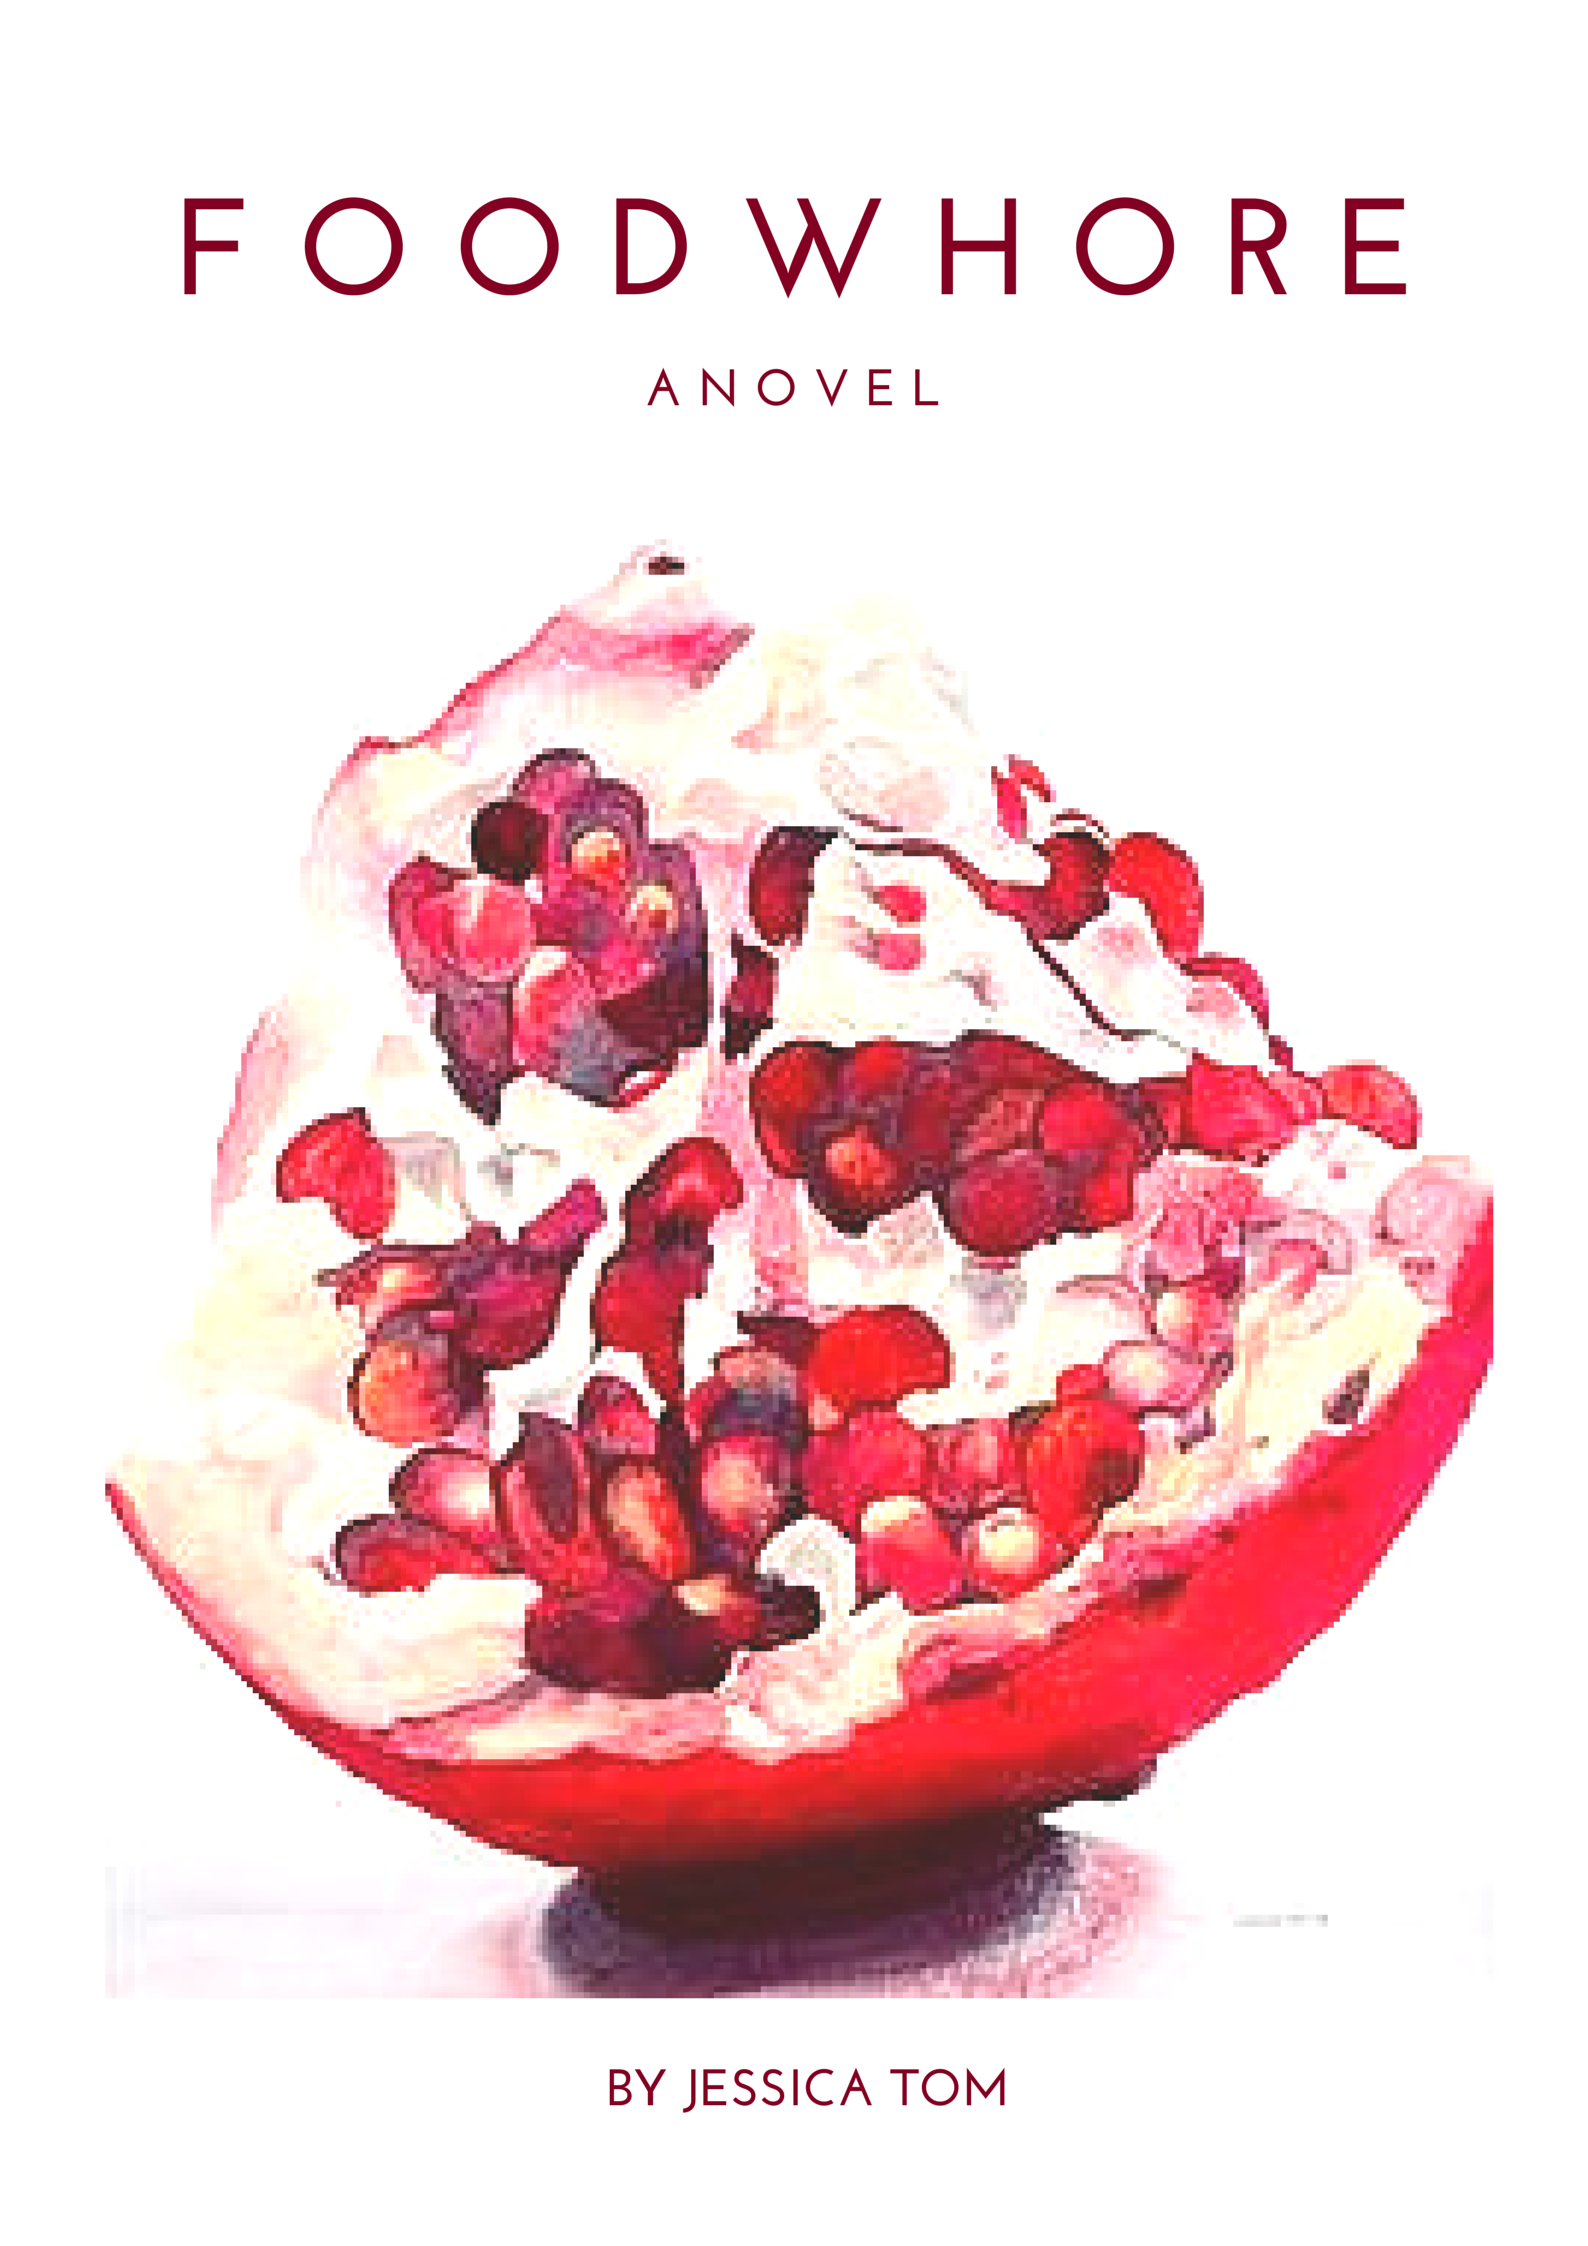 an early mock-up of the cover